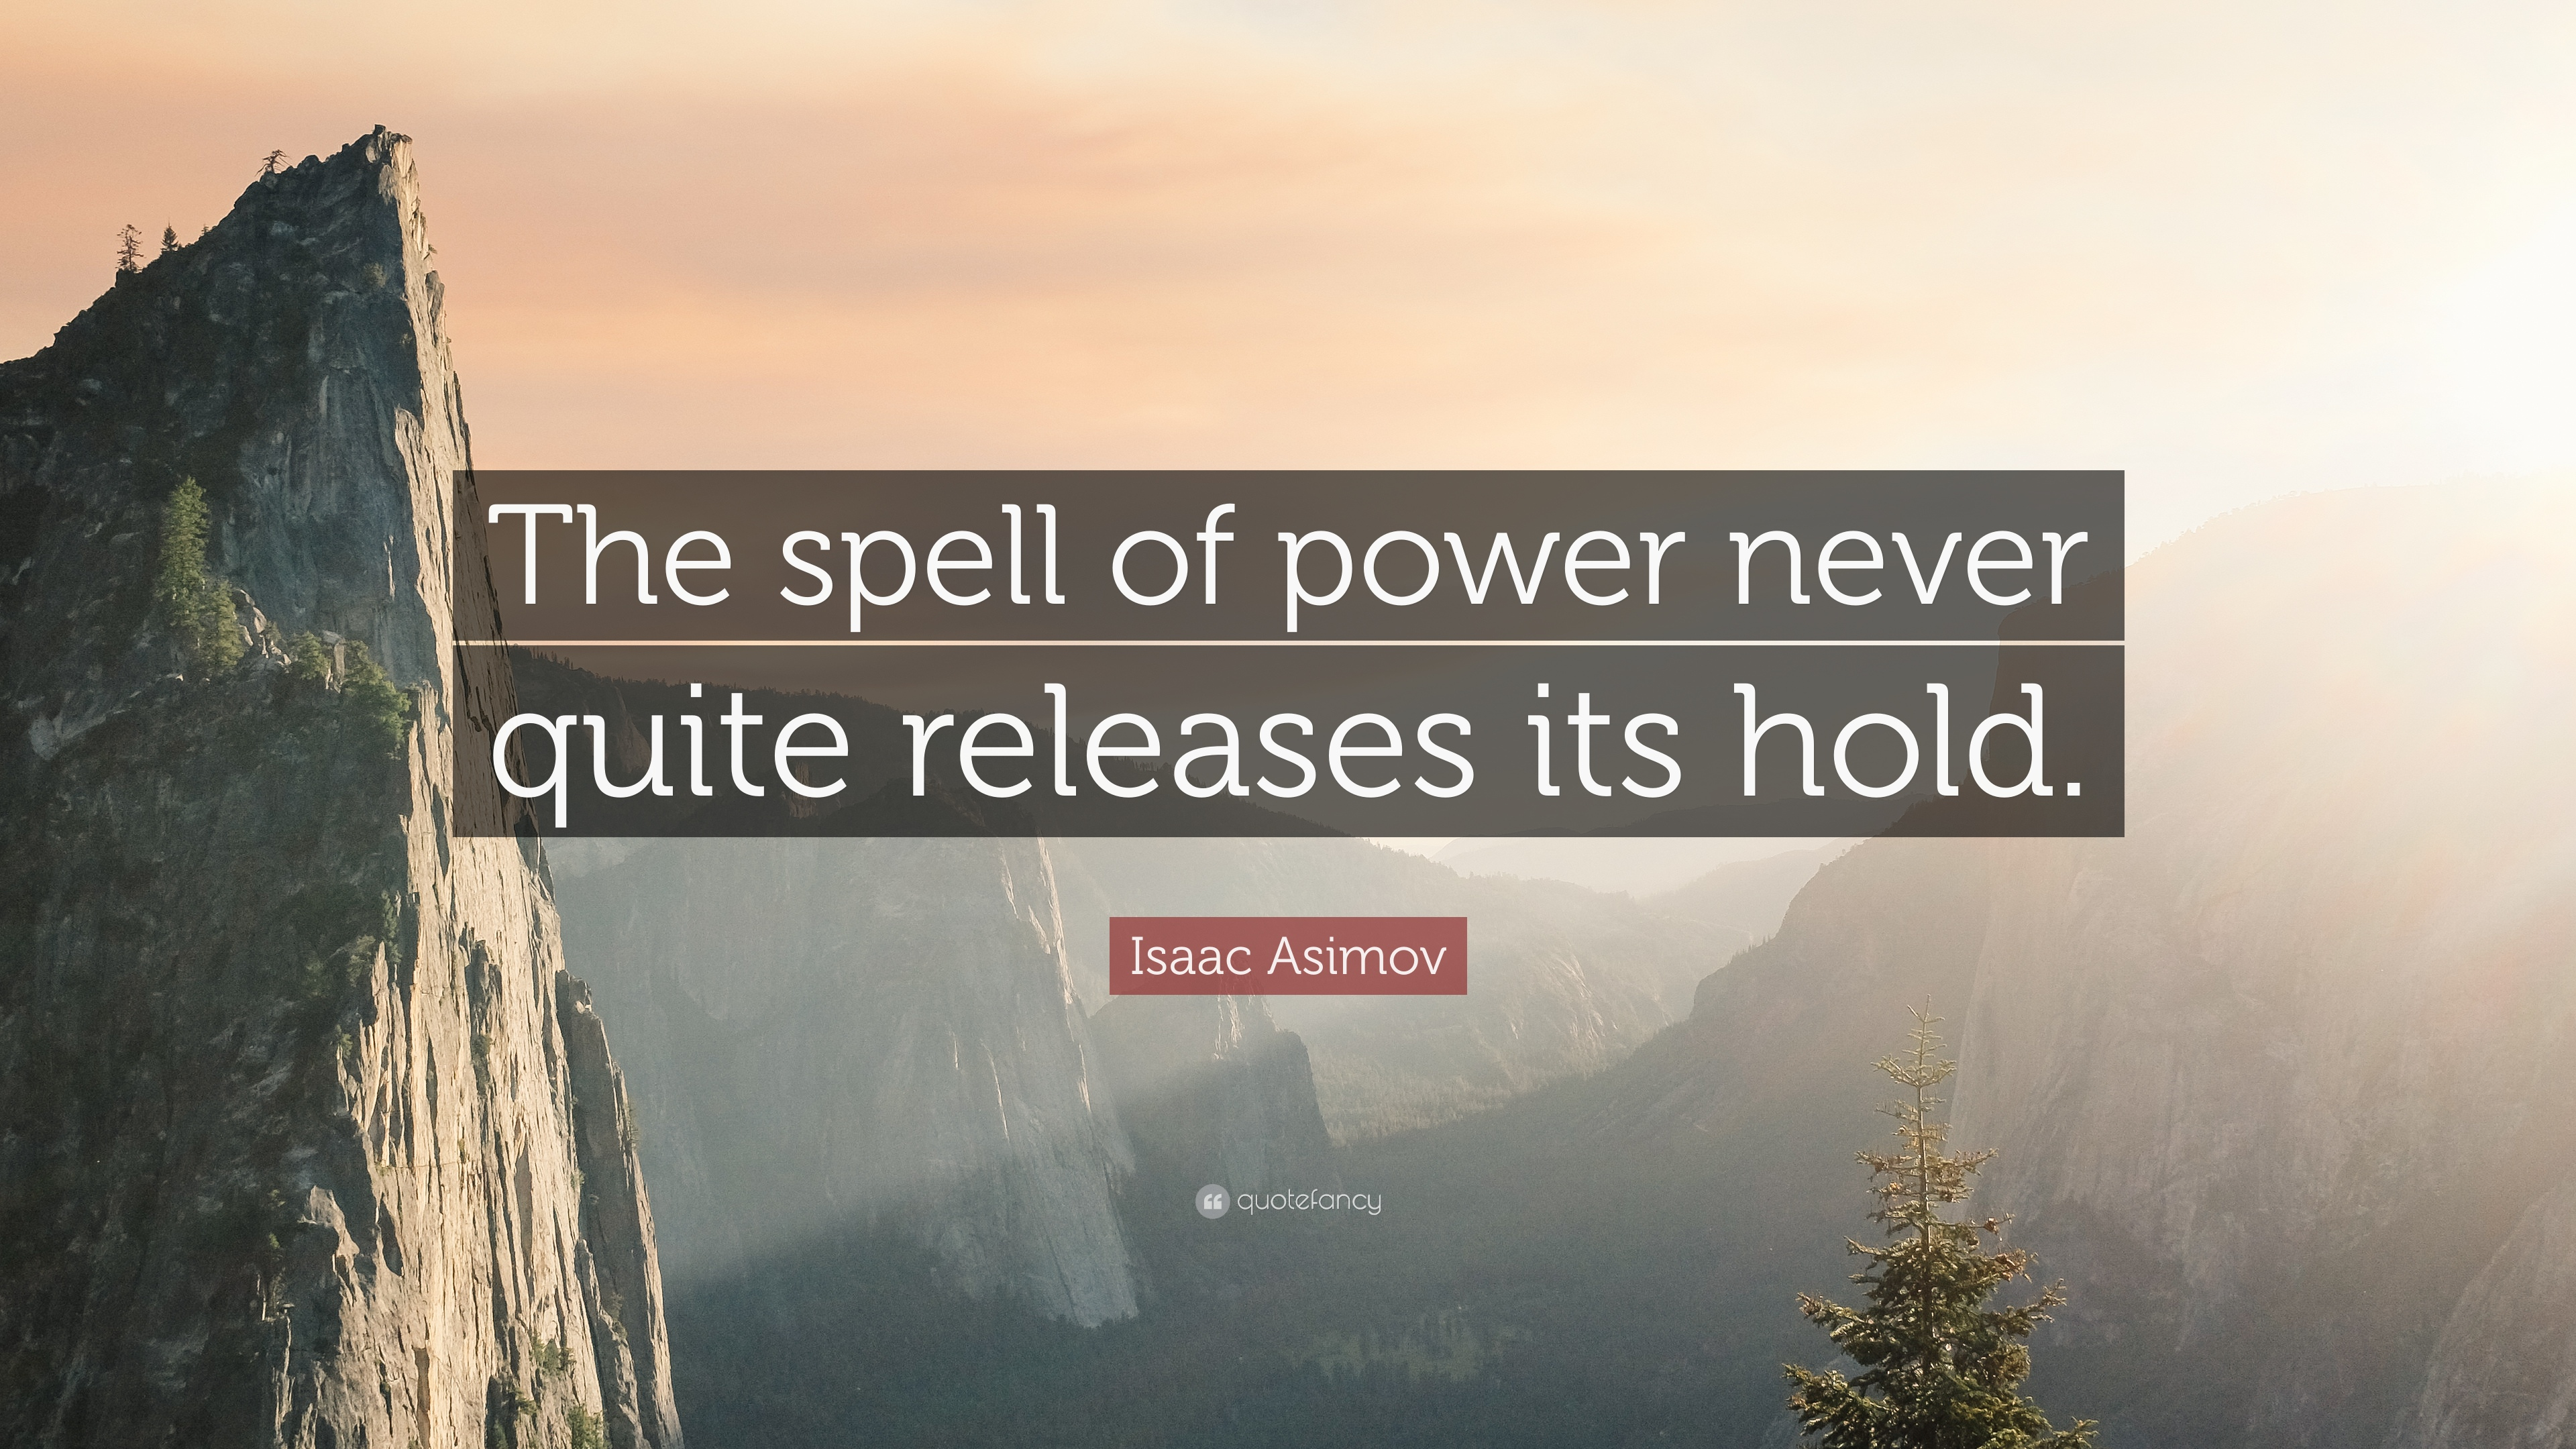 worksheet How To Spell Quite isaac asimov quote spell of power never quite releases its hold